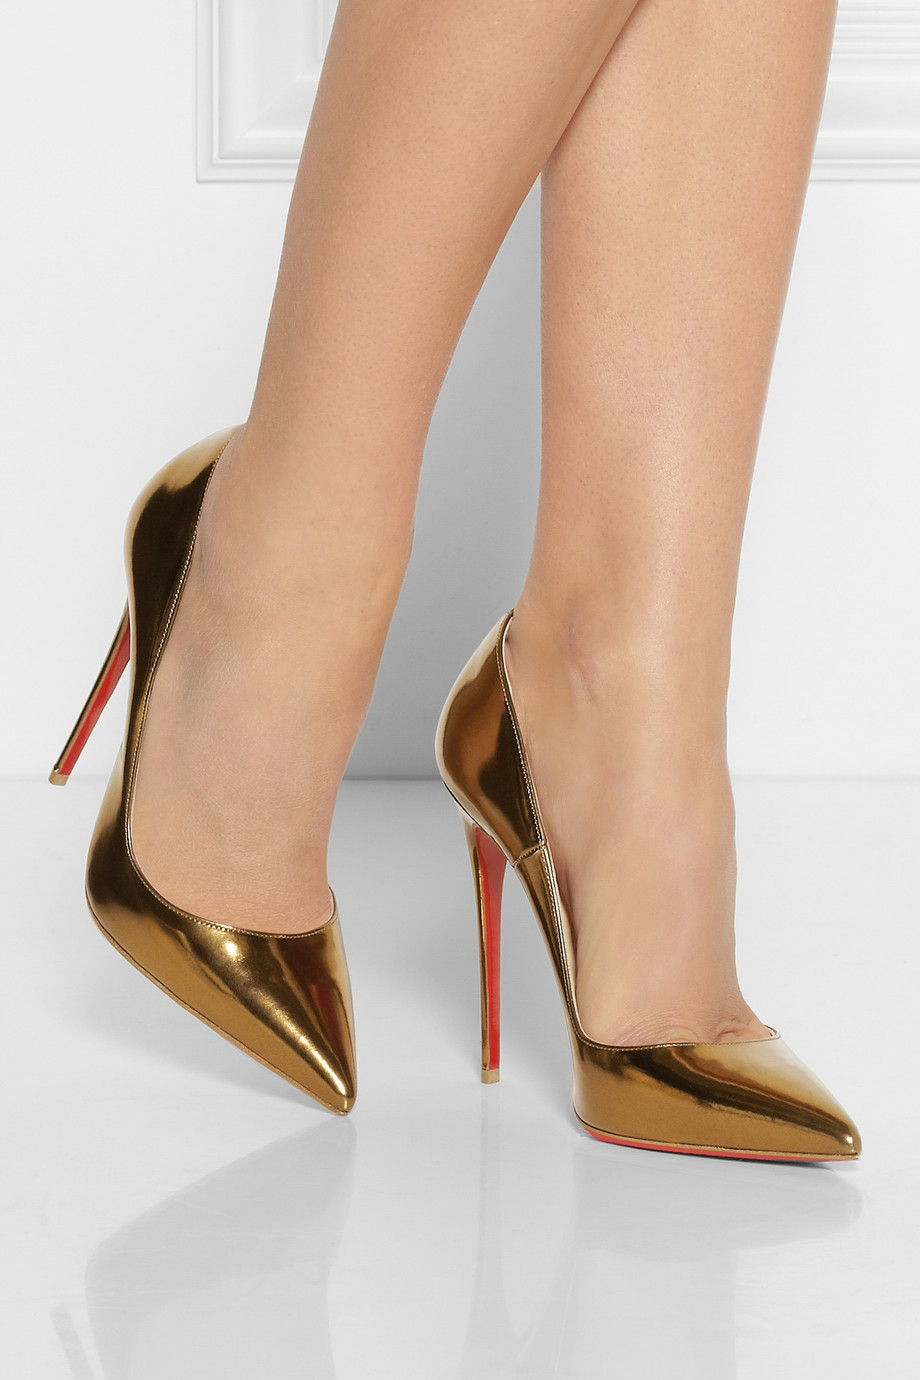 0873baec7478 Christian Louboutin So Kate 120 Patentleather Pumps in Metallic - Lyst